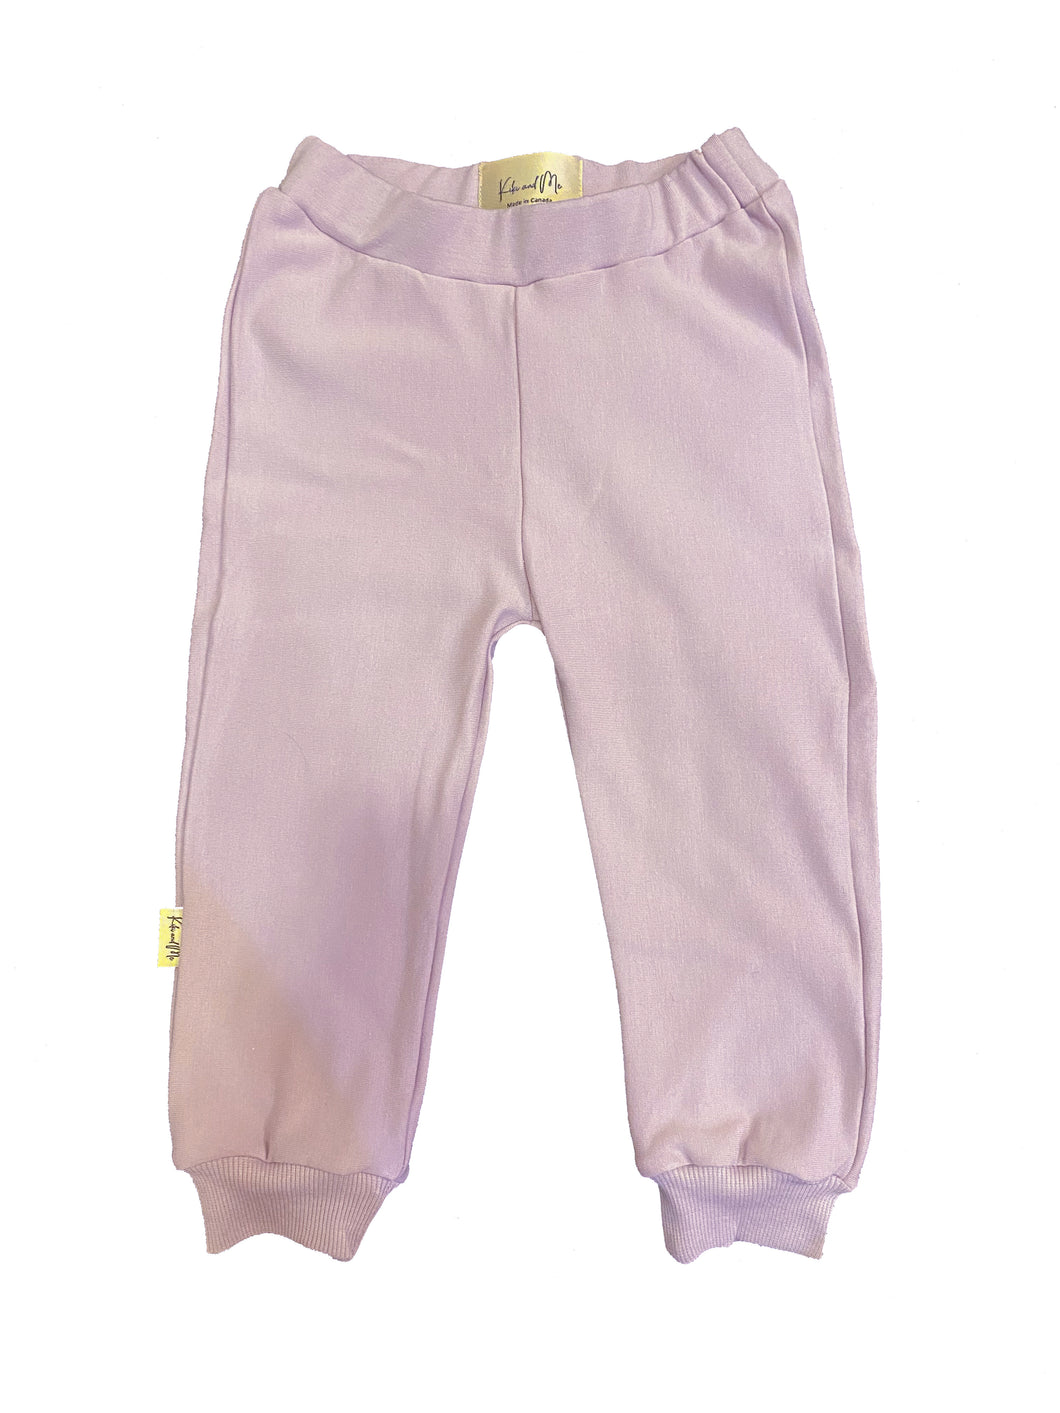 Little Kid's Pant - Lavender (0-6 to 3T)